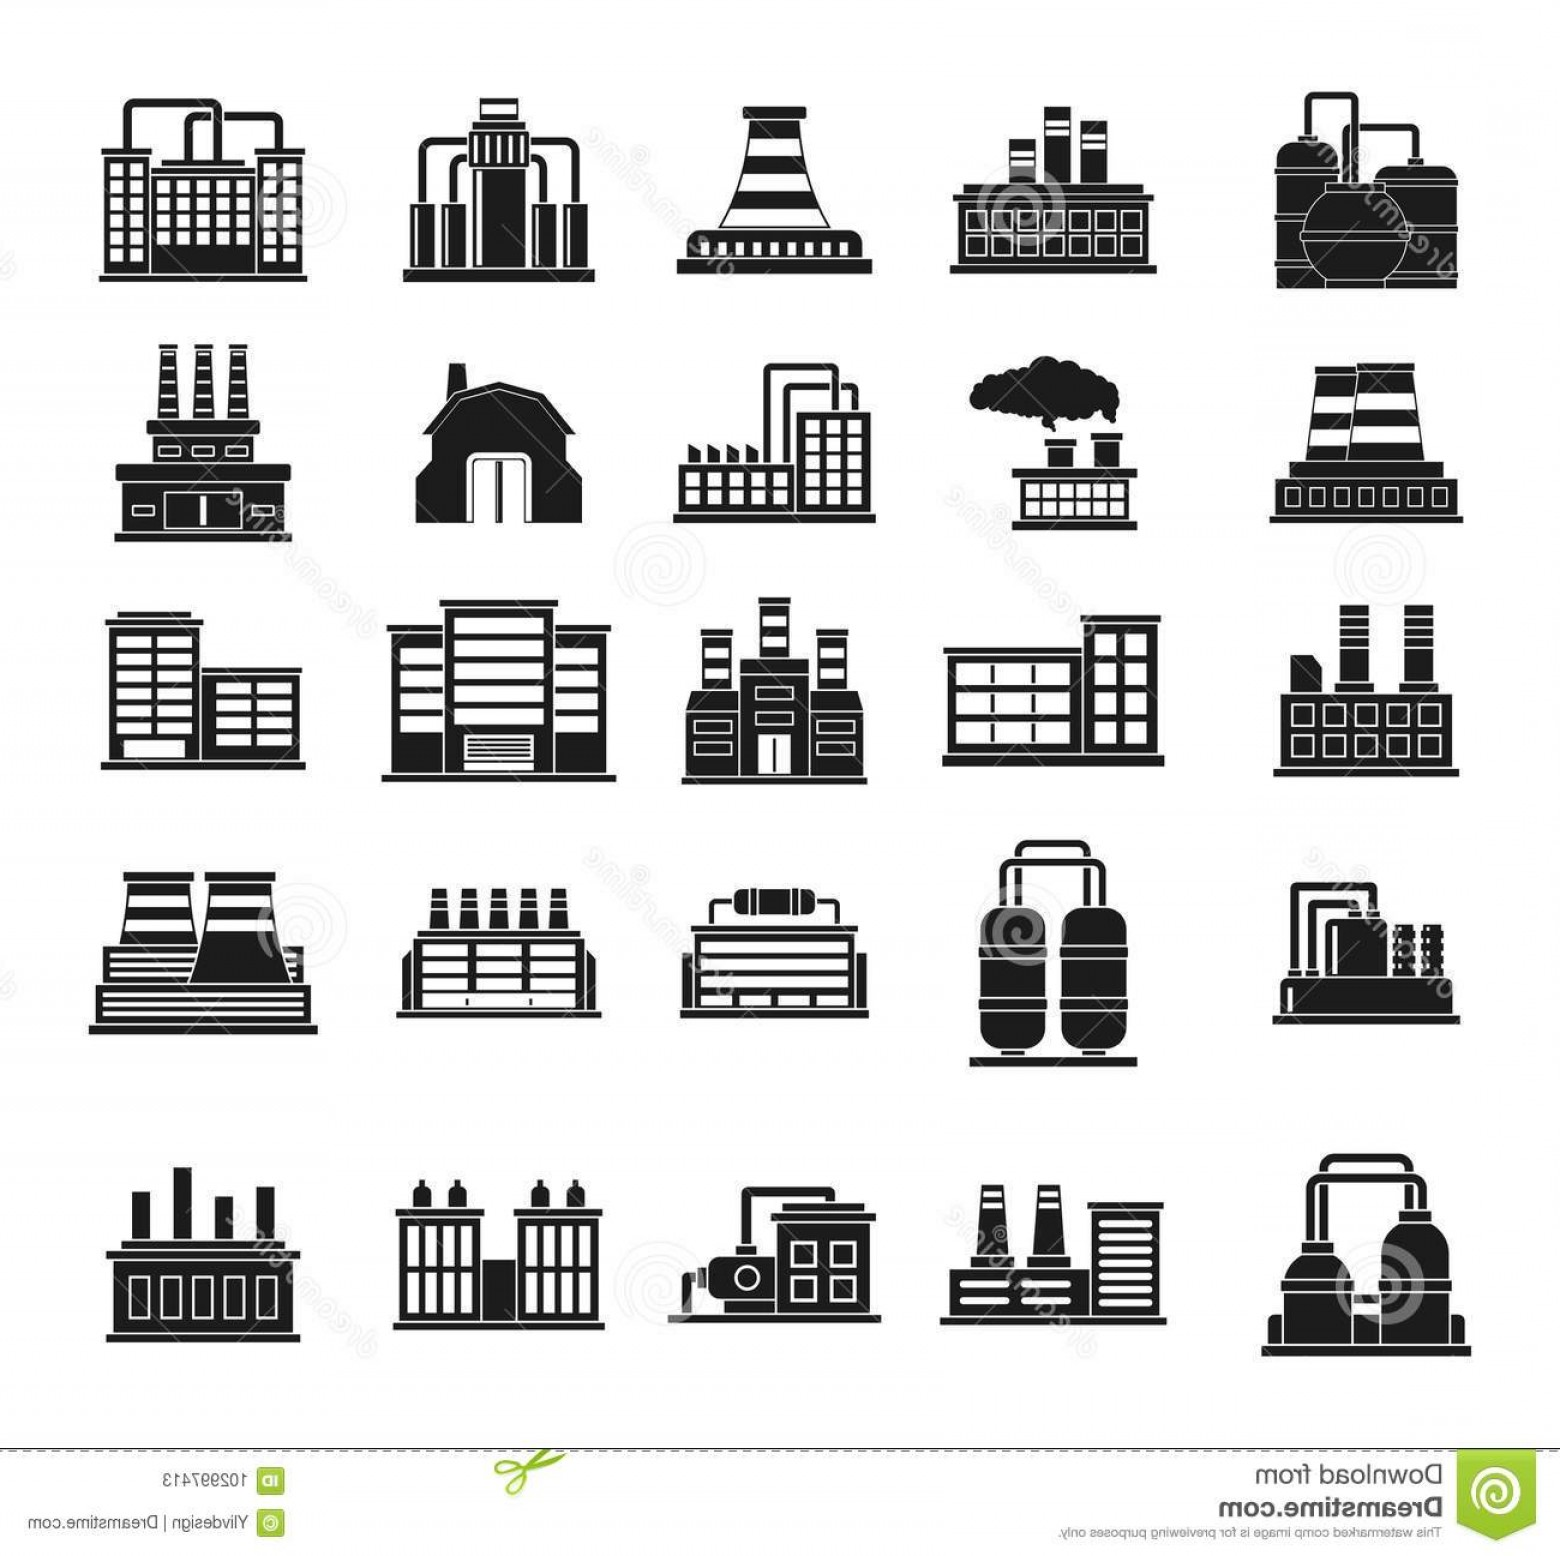 Gear Vector Icons Large: Factory Icon Set Simple Set Factory Vector Icons Web Design Isolated White Background Factory Icon Set Simple Style Image